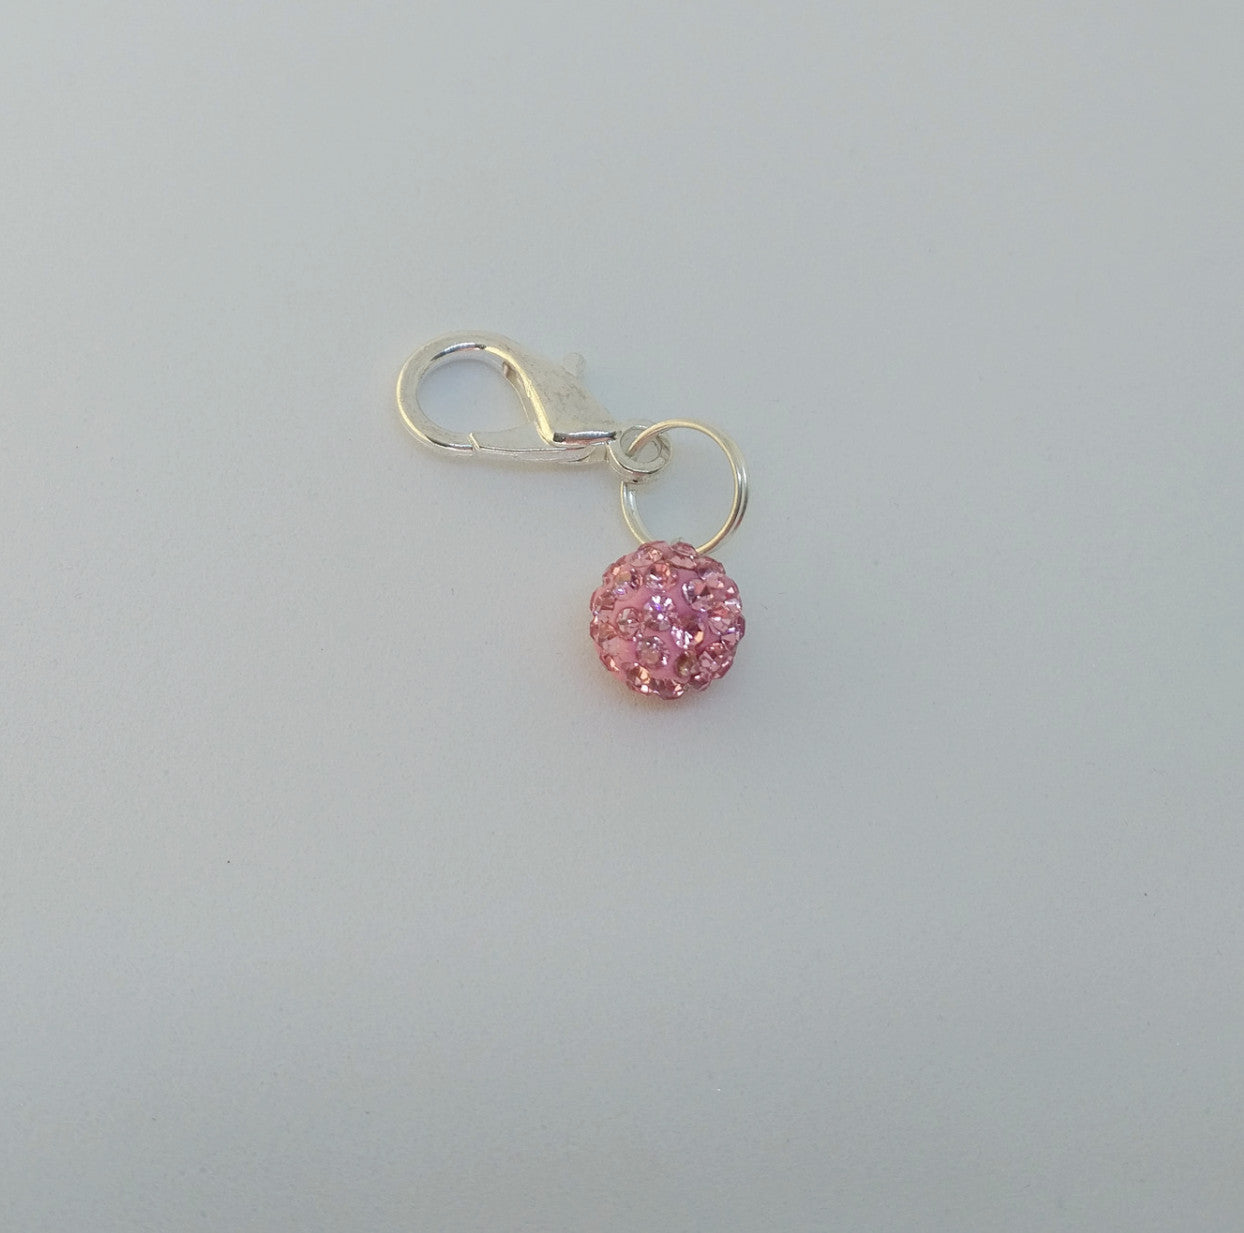 Pink Lemonade Crystal Bridle Charm - Pony Express Girls